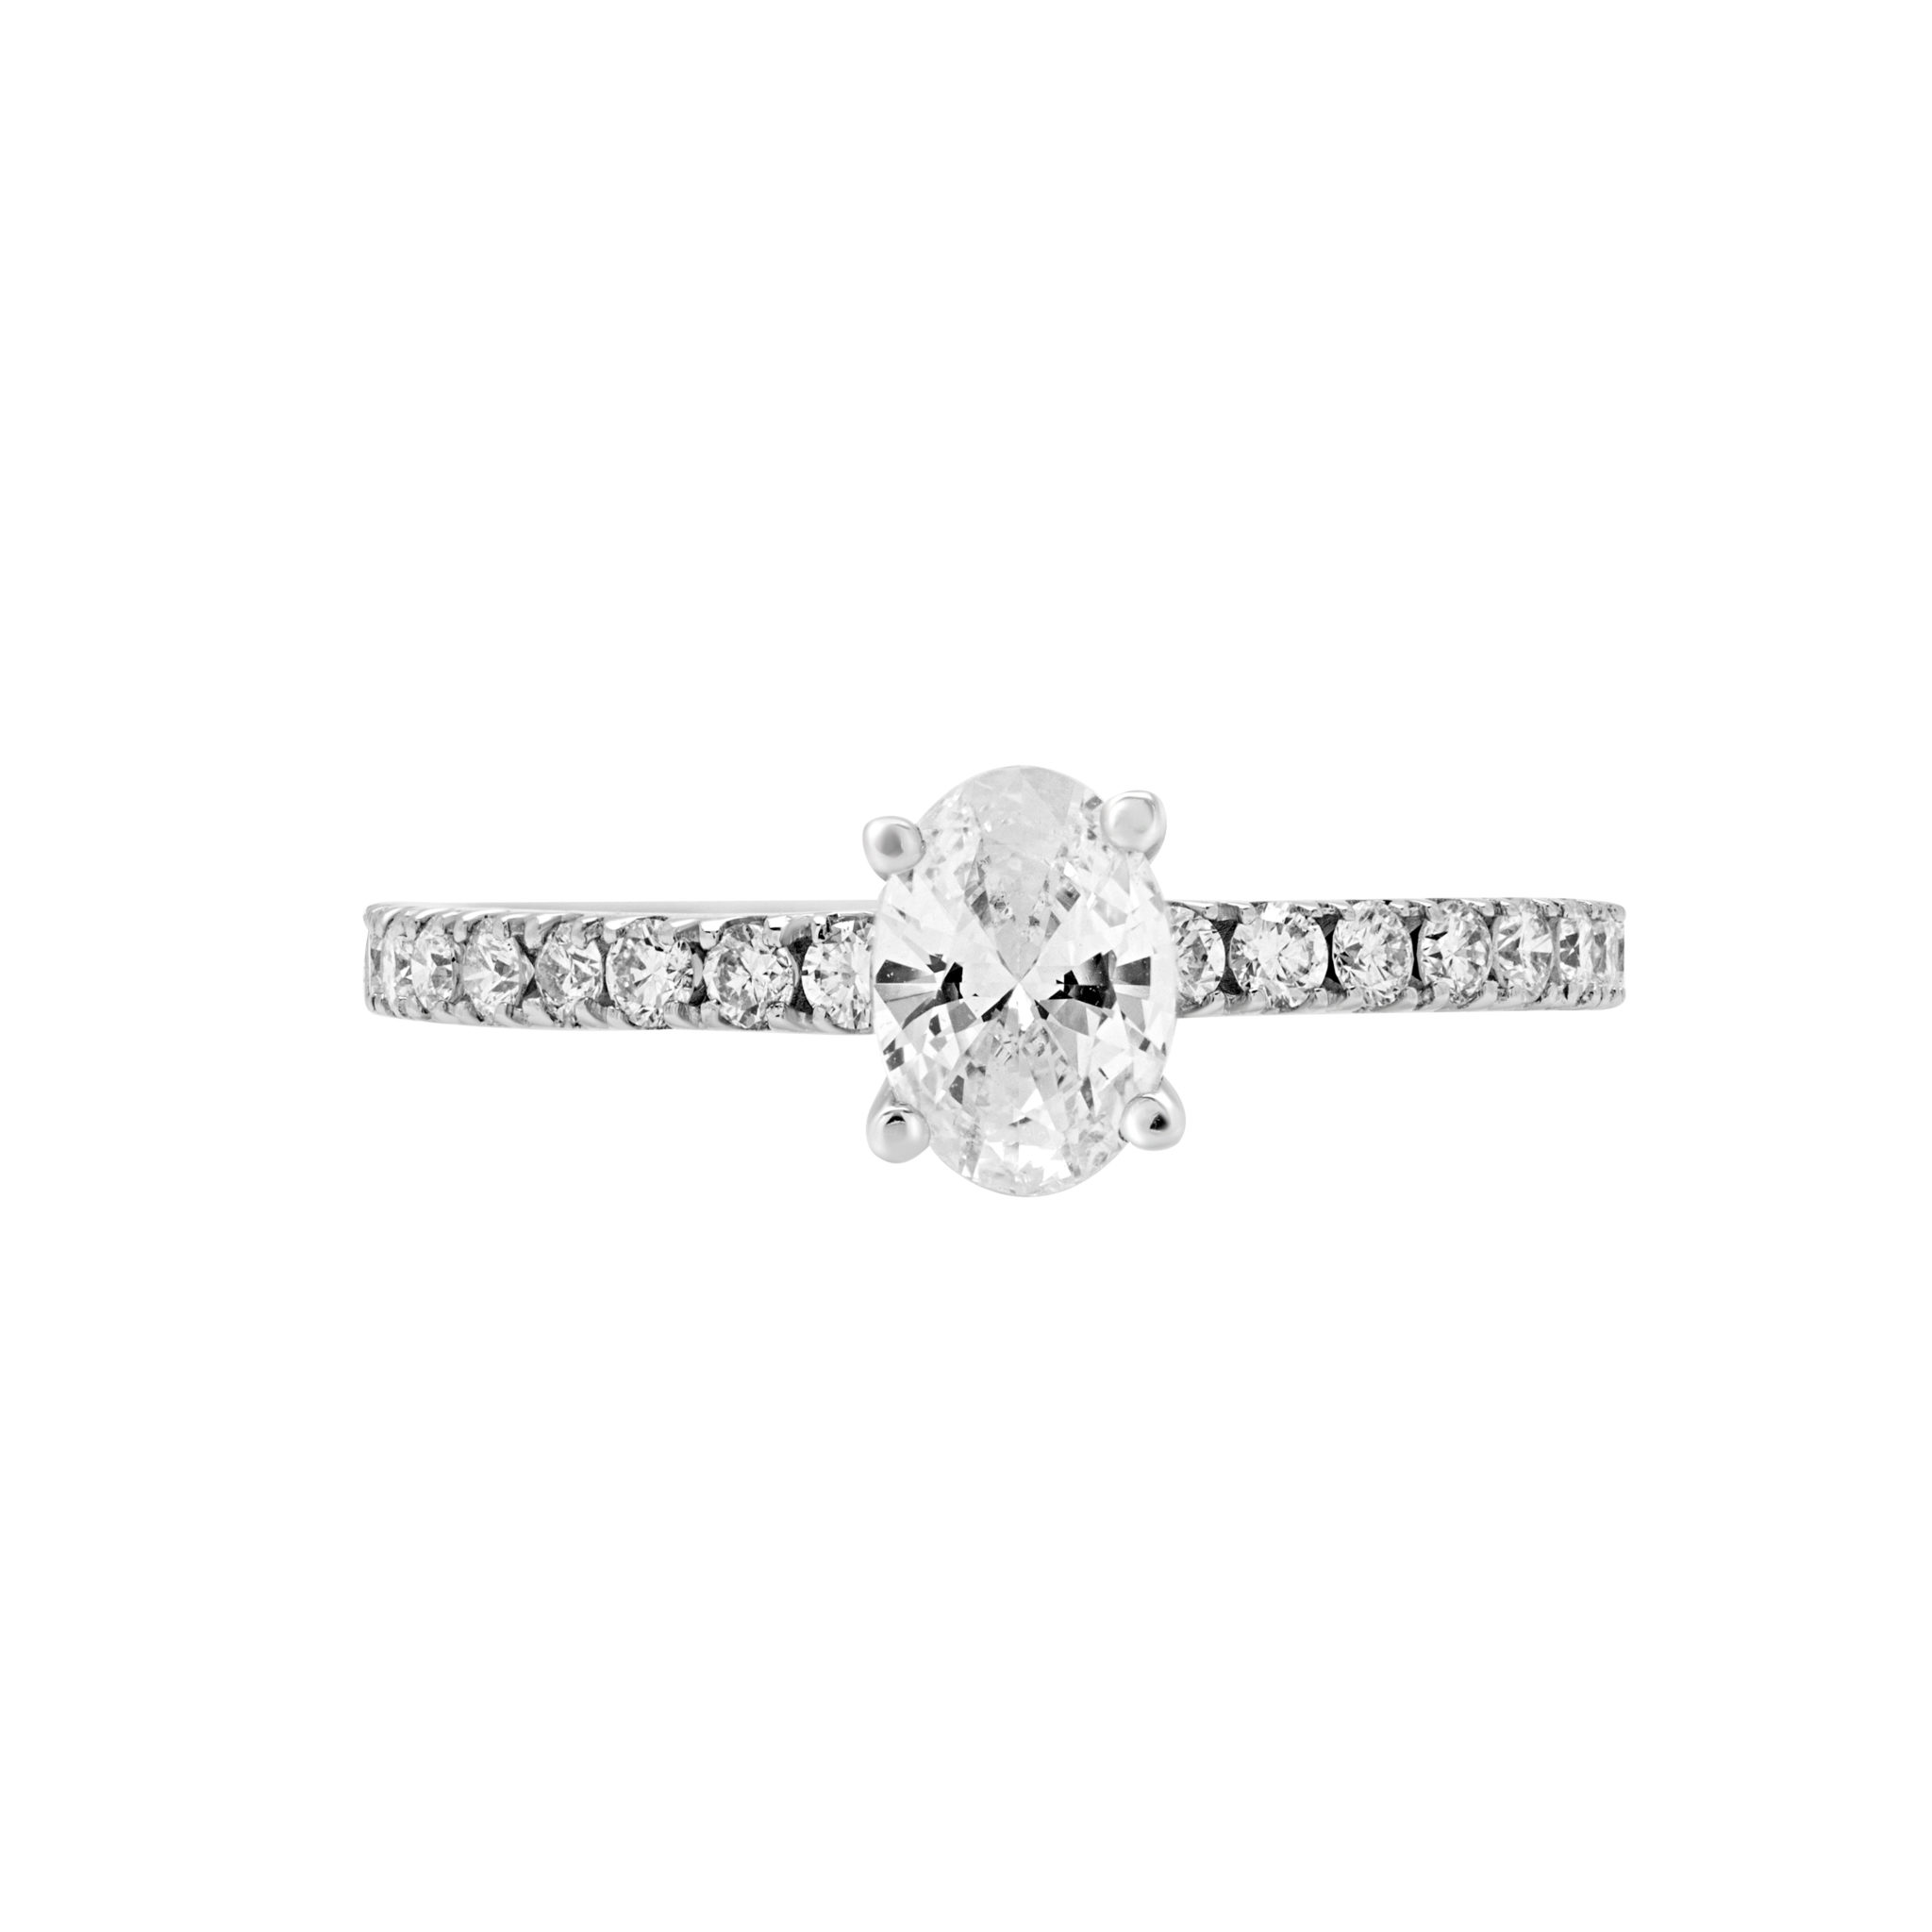 Lovable oval Solitaire engagement ring diamonds center 0.77 ct vs1 e